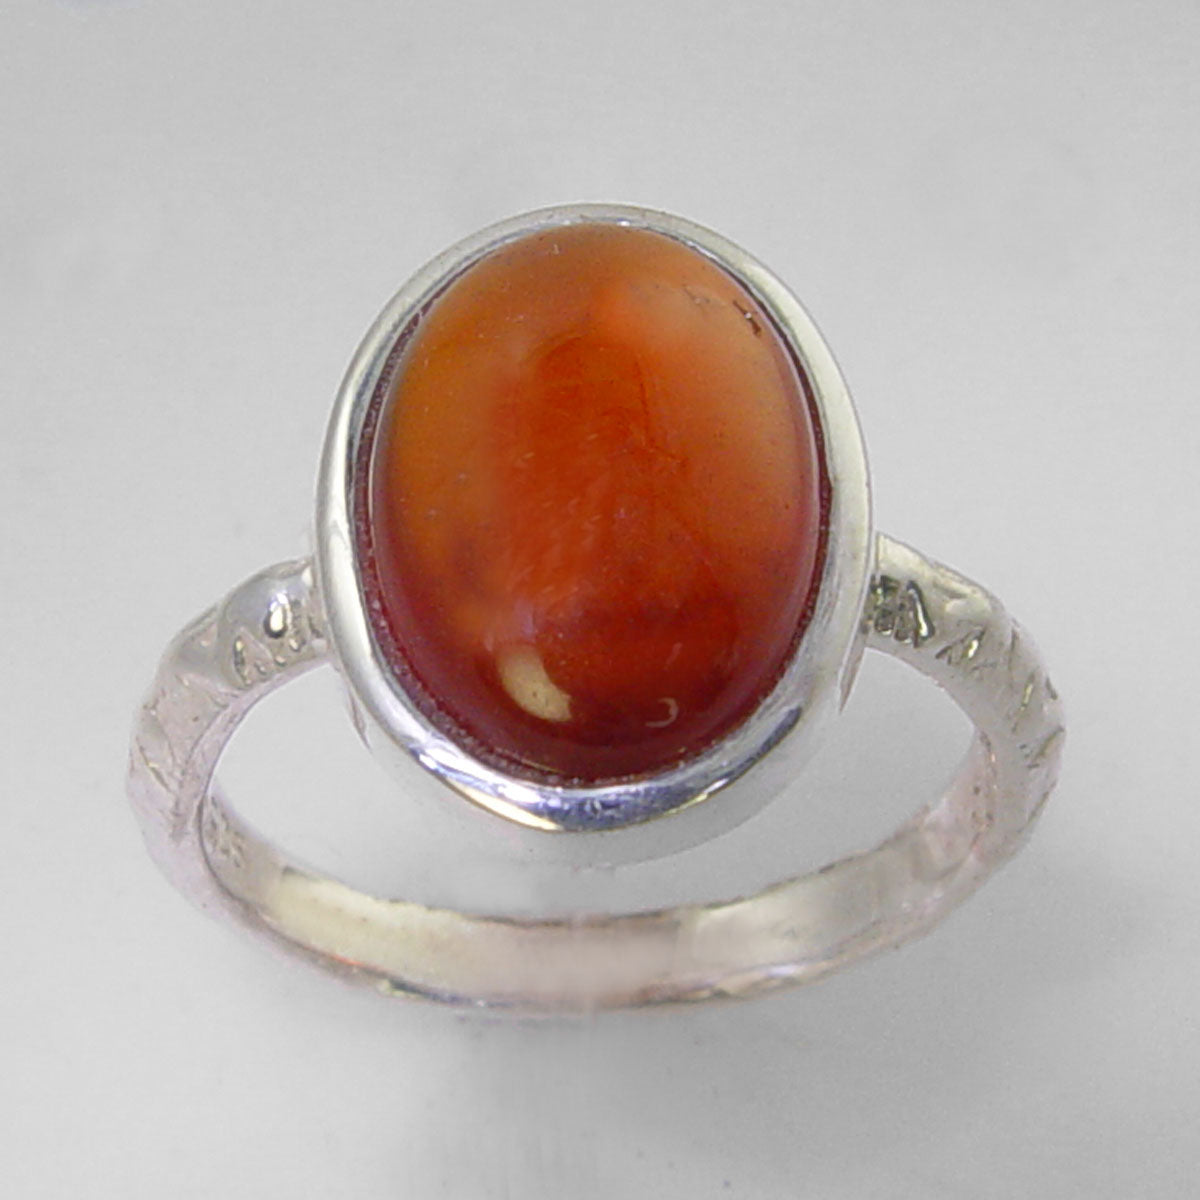 Cinnamon Hessonite Garnet 8.35 ct Oval Cab Sterling Silver Ring, Size 7.5